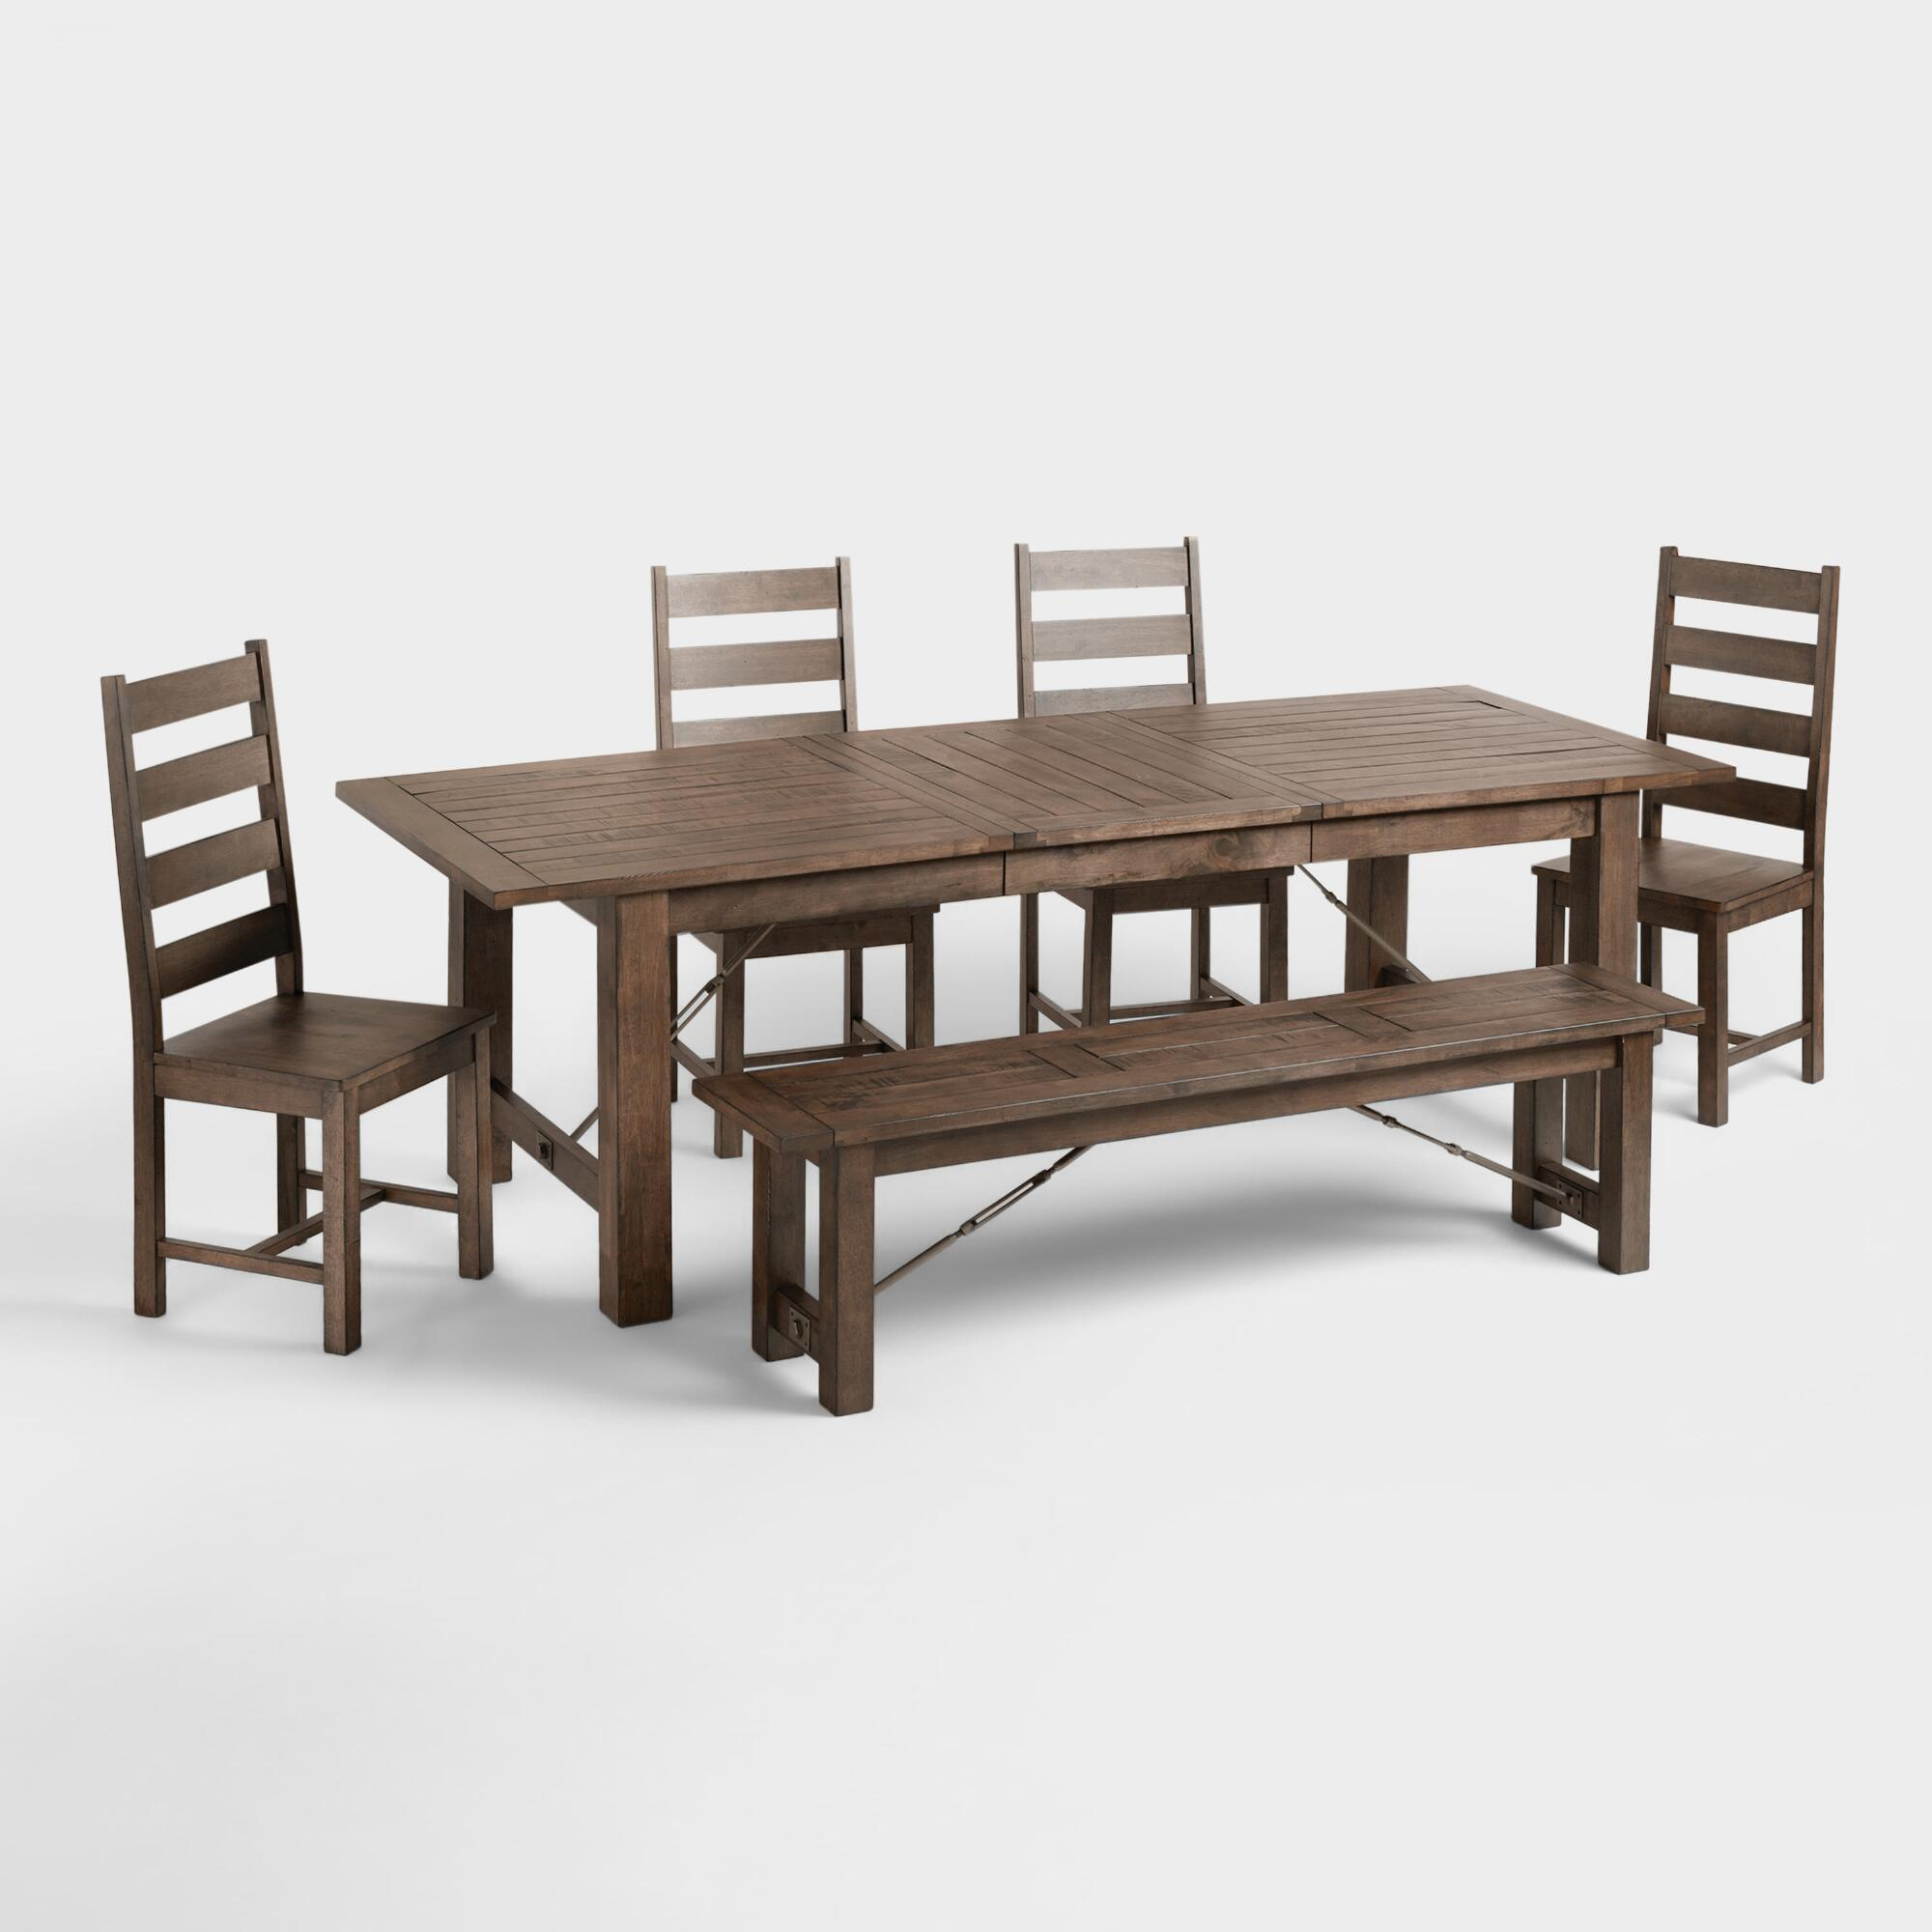 Dining Room Inexpensive Dining Room Table With Bench And: Garner Dining Collection